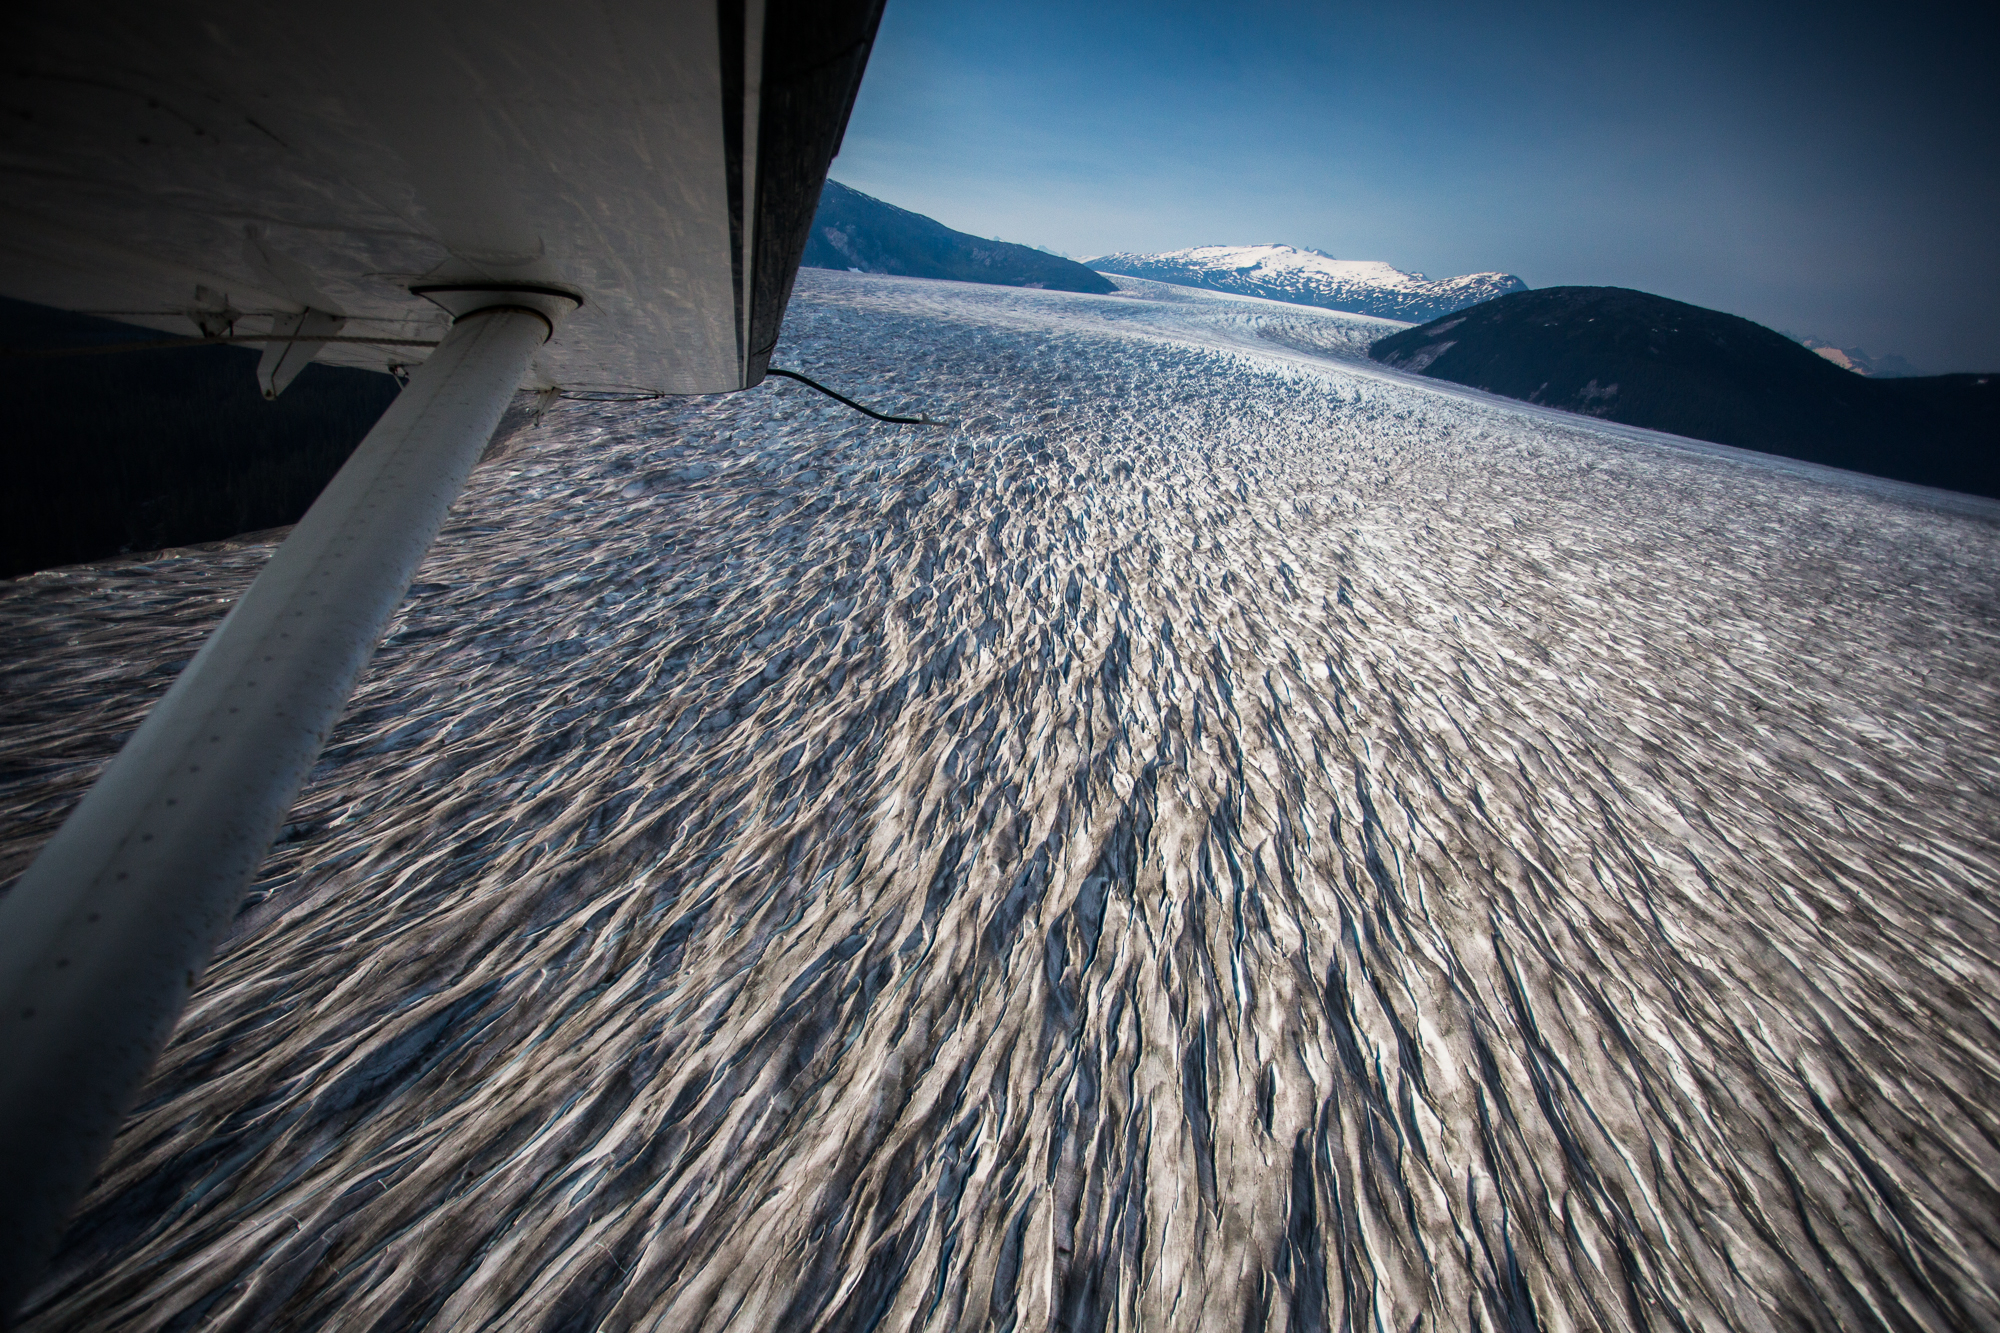 The Taku Glacier, one of the seemingly countless glaciers that surround Juneua, is seen here from the air. The Taku glacier is a tidewater glacier known to be the thickest glacier in the world at nearly 5,000 feet thick (photo: Chad Shmukler).